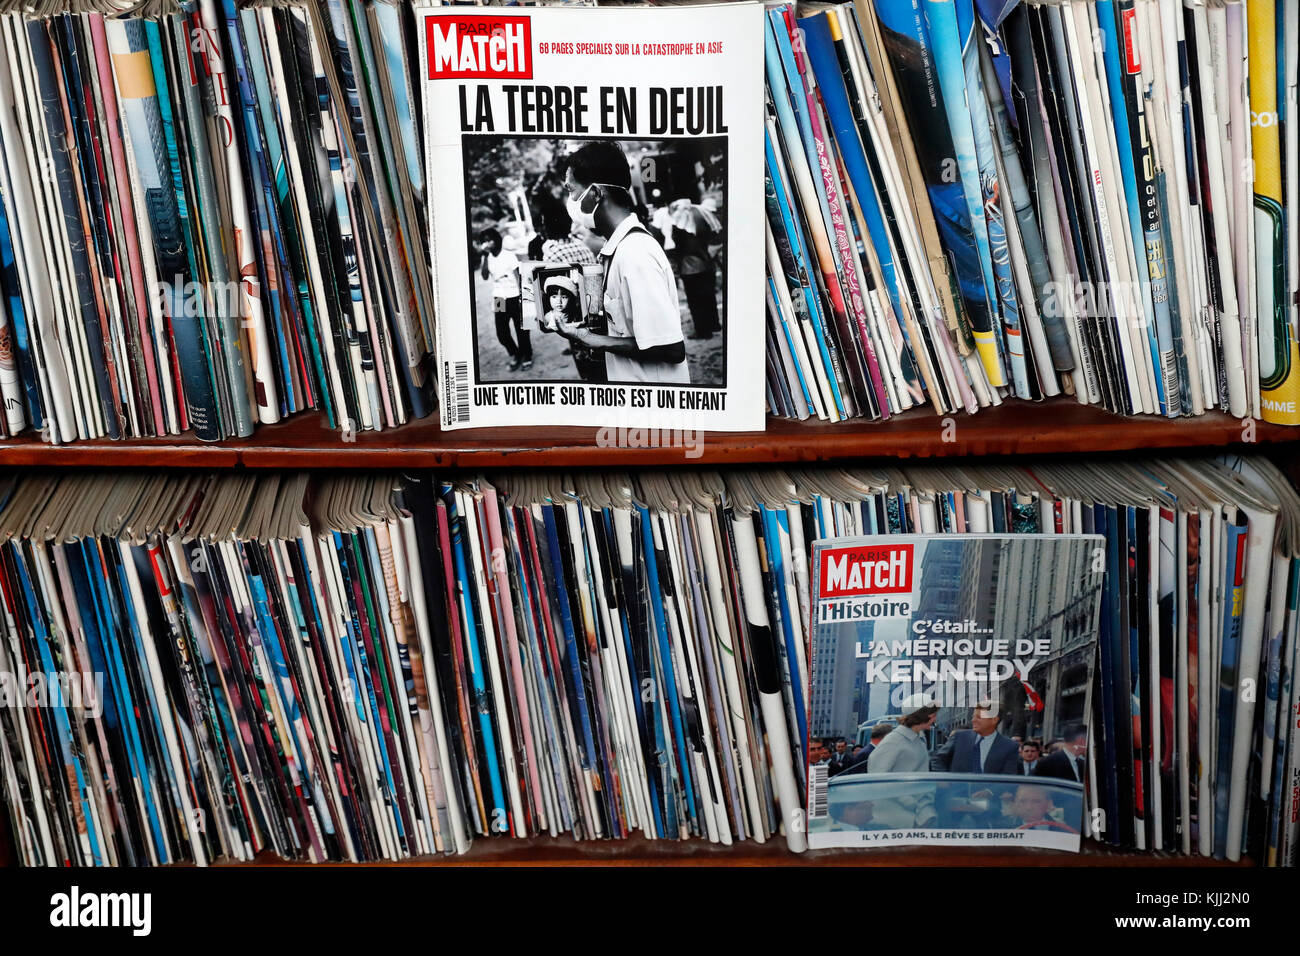 Collection of old Paris Match magazines.  France. - Stock Image